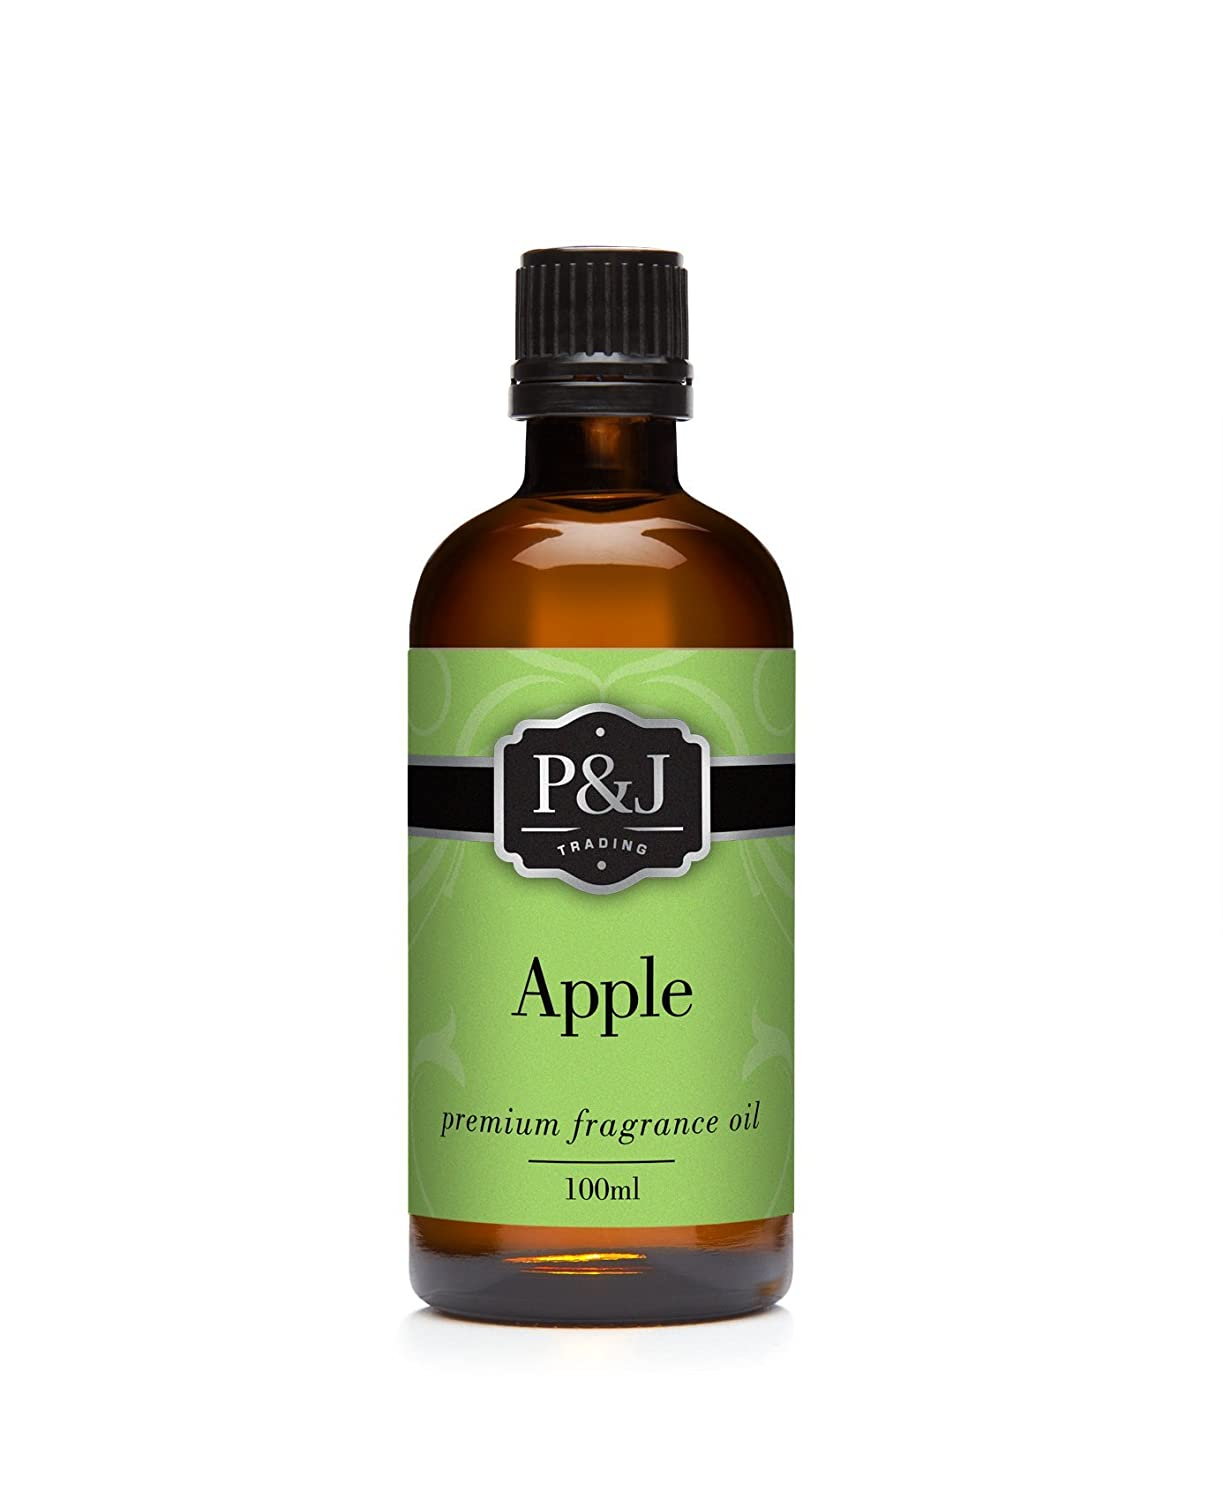 Apple Fragrance Oil - Premium Grade Scented Oil - 100ml/3.3oz